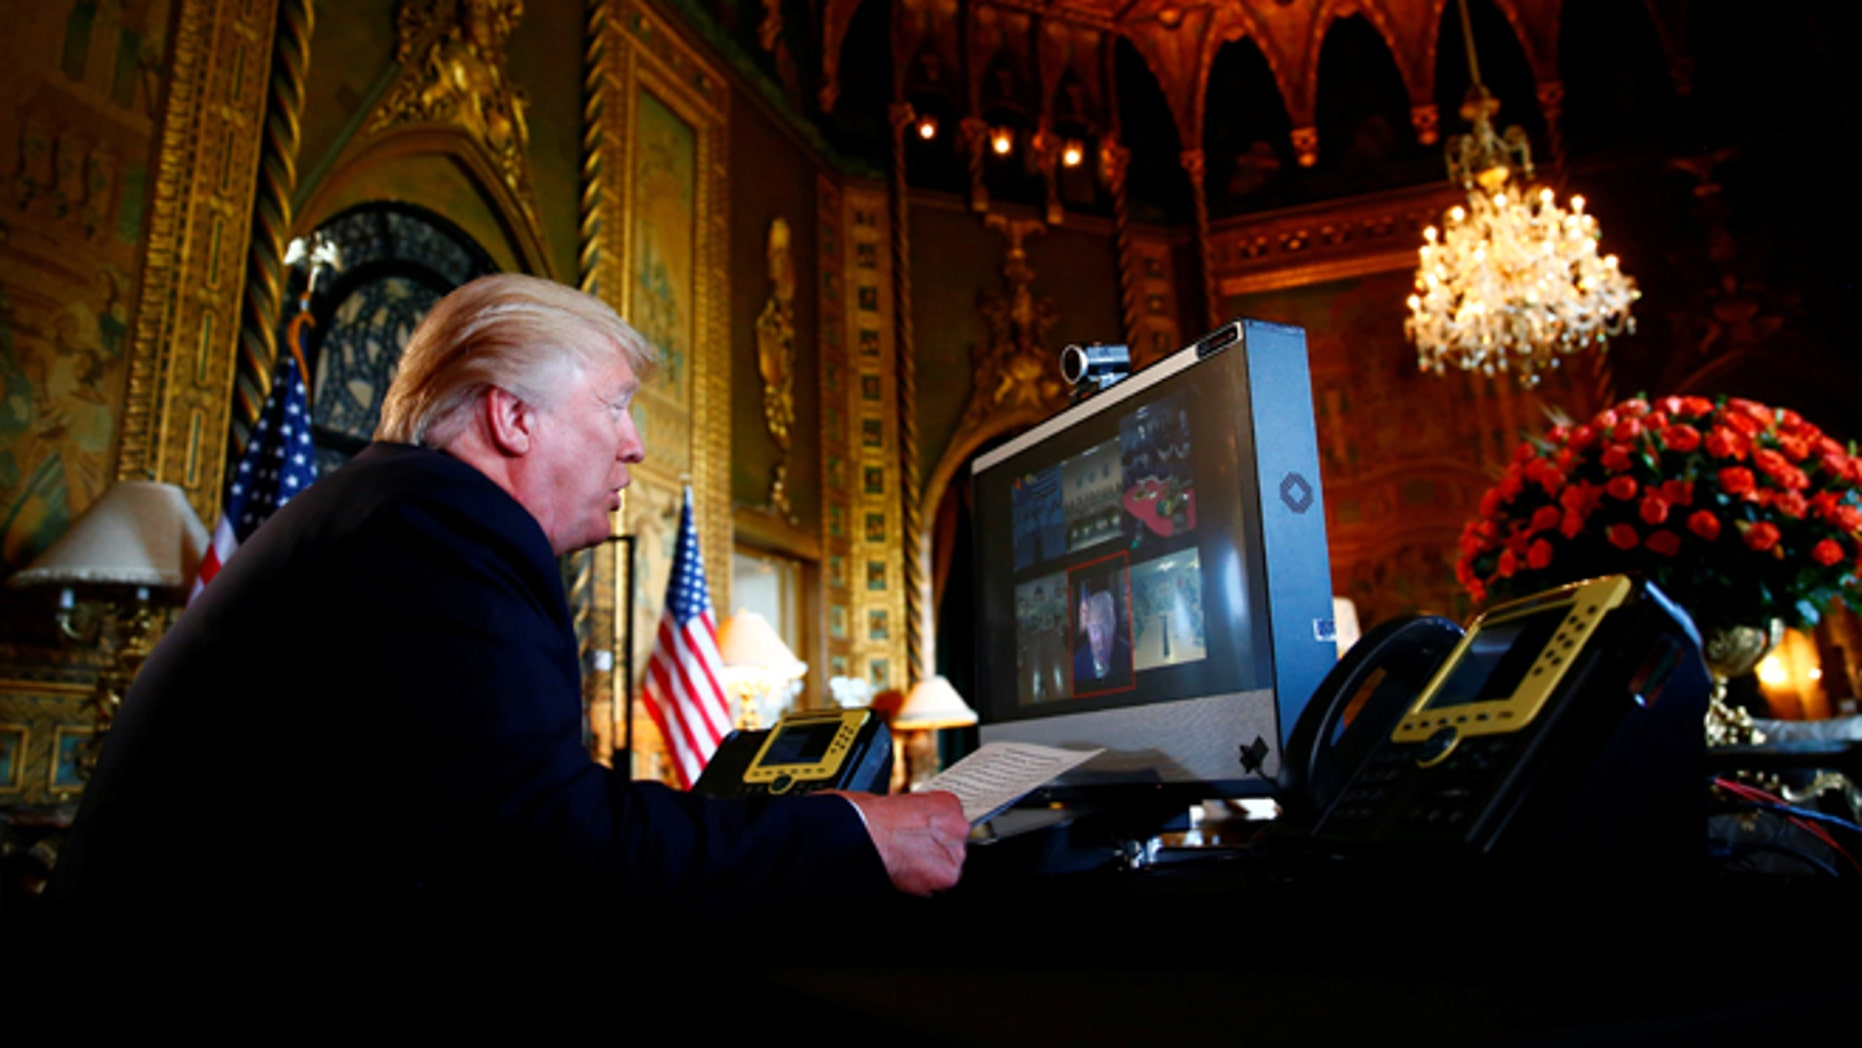 President Donald Trump speaks via videoconference to U.S. troops, from his Mar-a-Lago estate in Palm Beach, Fla., Nov. 23, 2017.